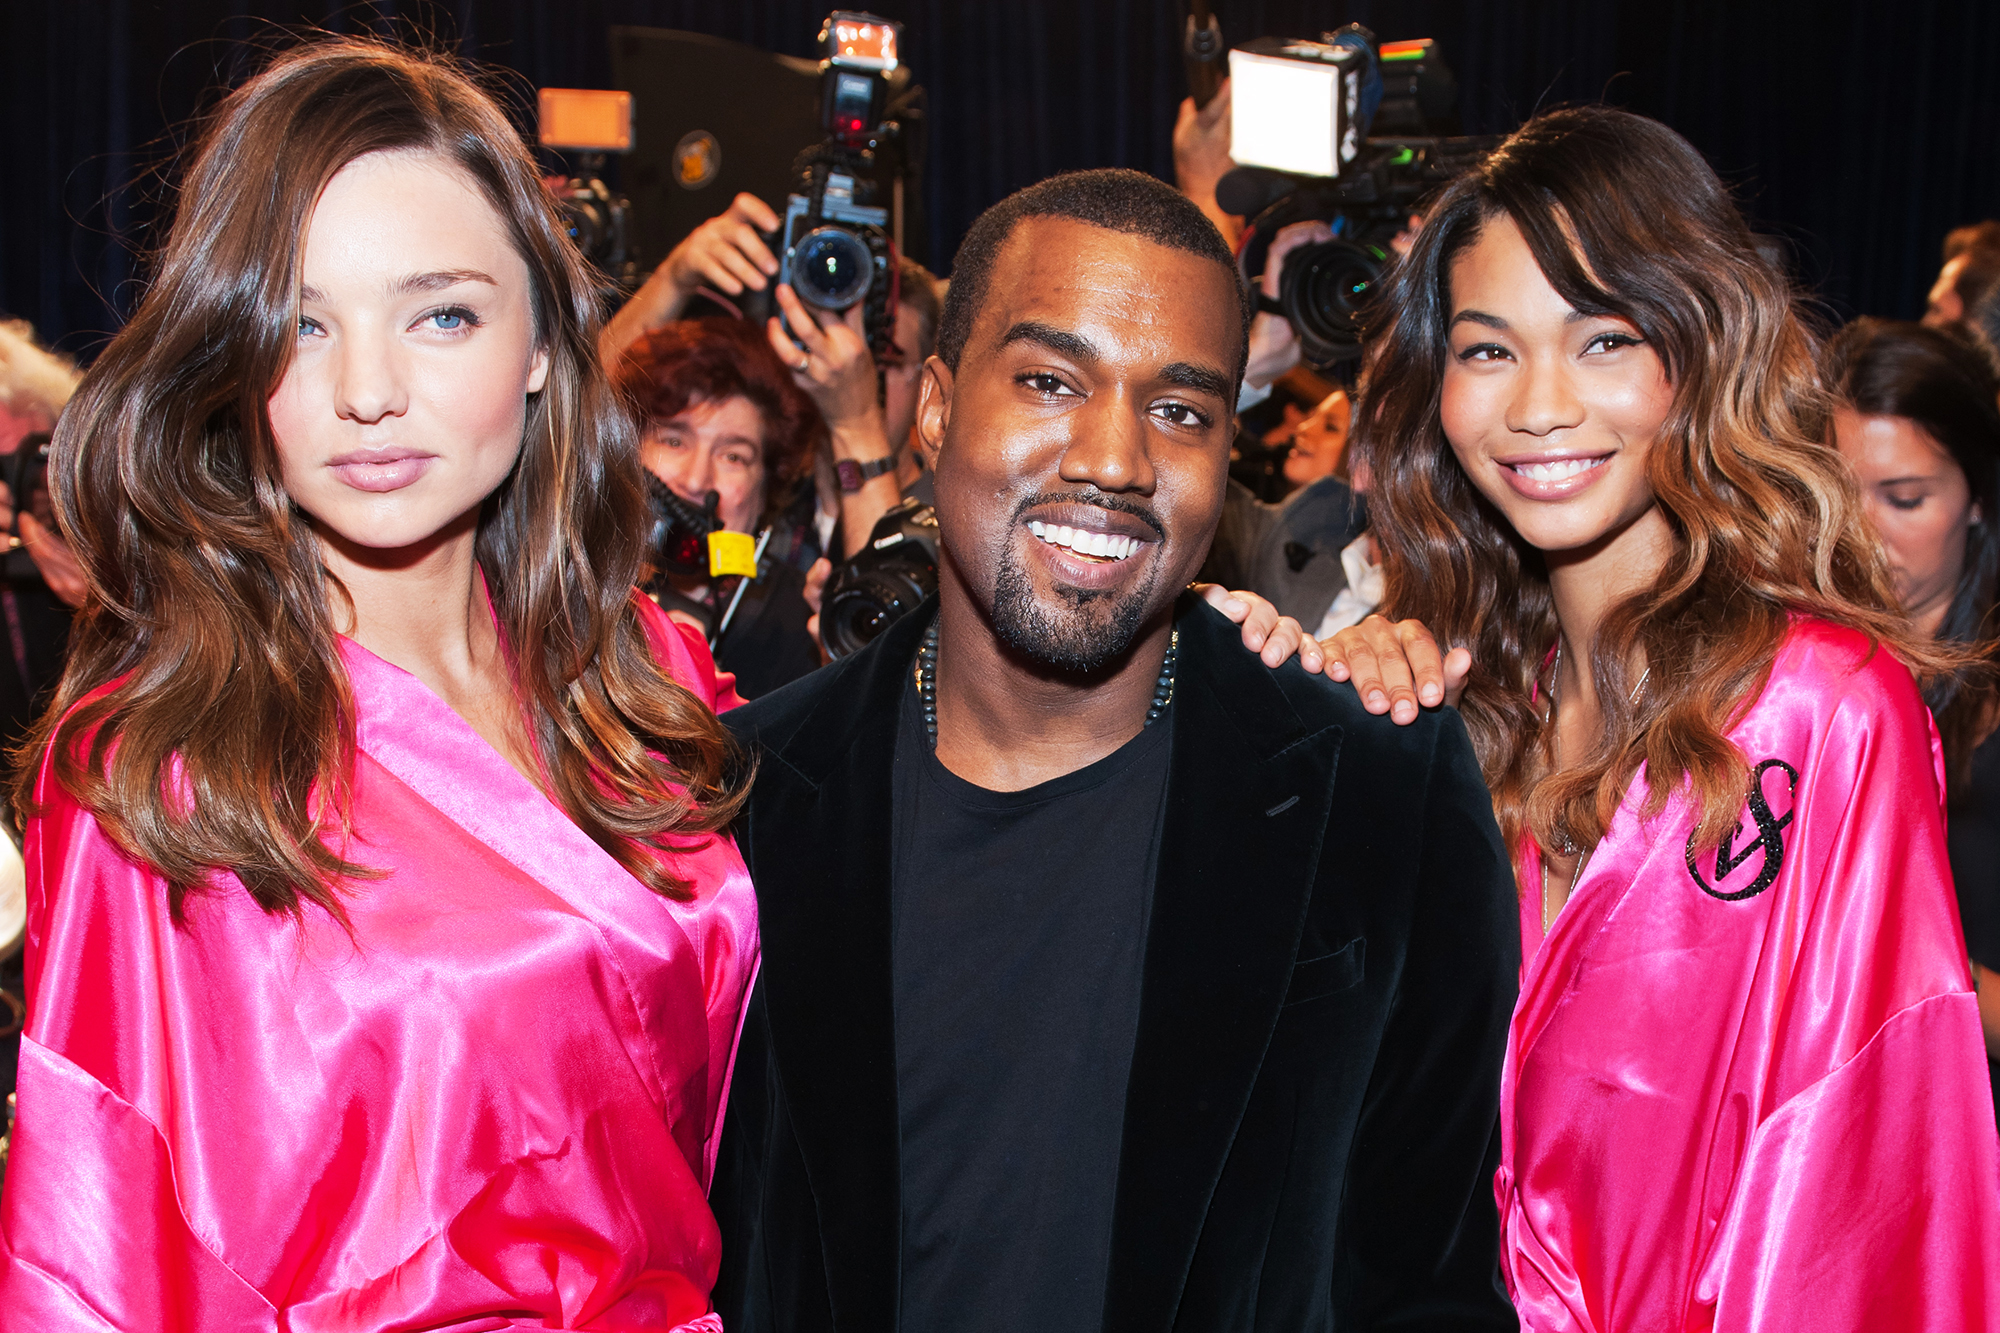 From left: Miranda Kerr, Kanye West and Chanel Iman backstage at the 2011 Victoria's Secret Fashion Show in New York City, on Nov. 9, 2011.